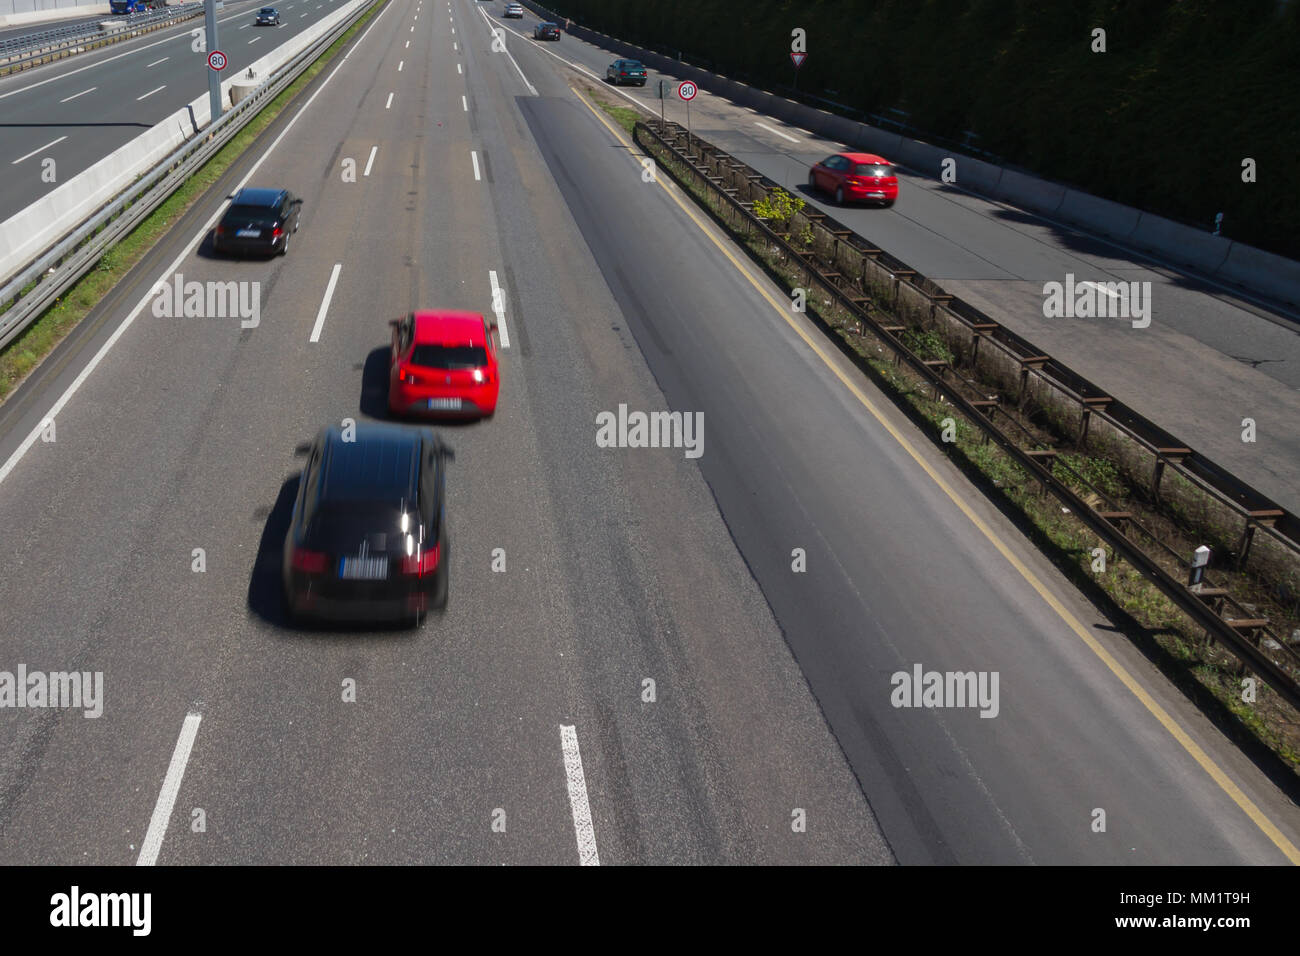 Jostling car running fast on a german autobahn - Stock Image